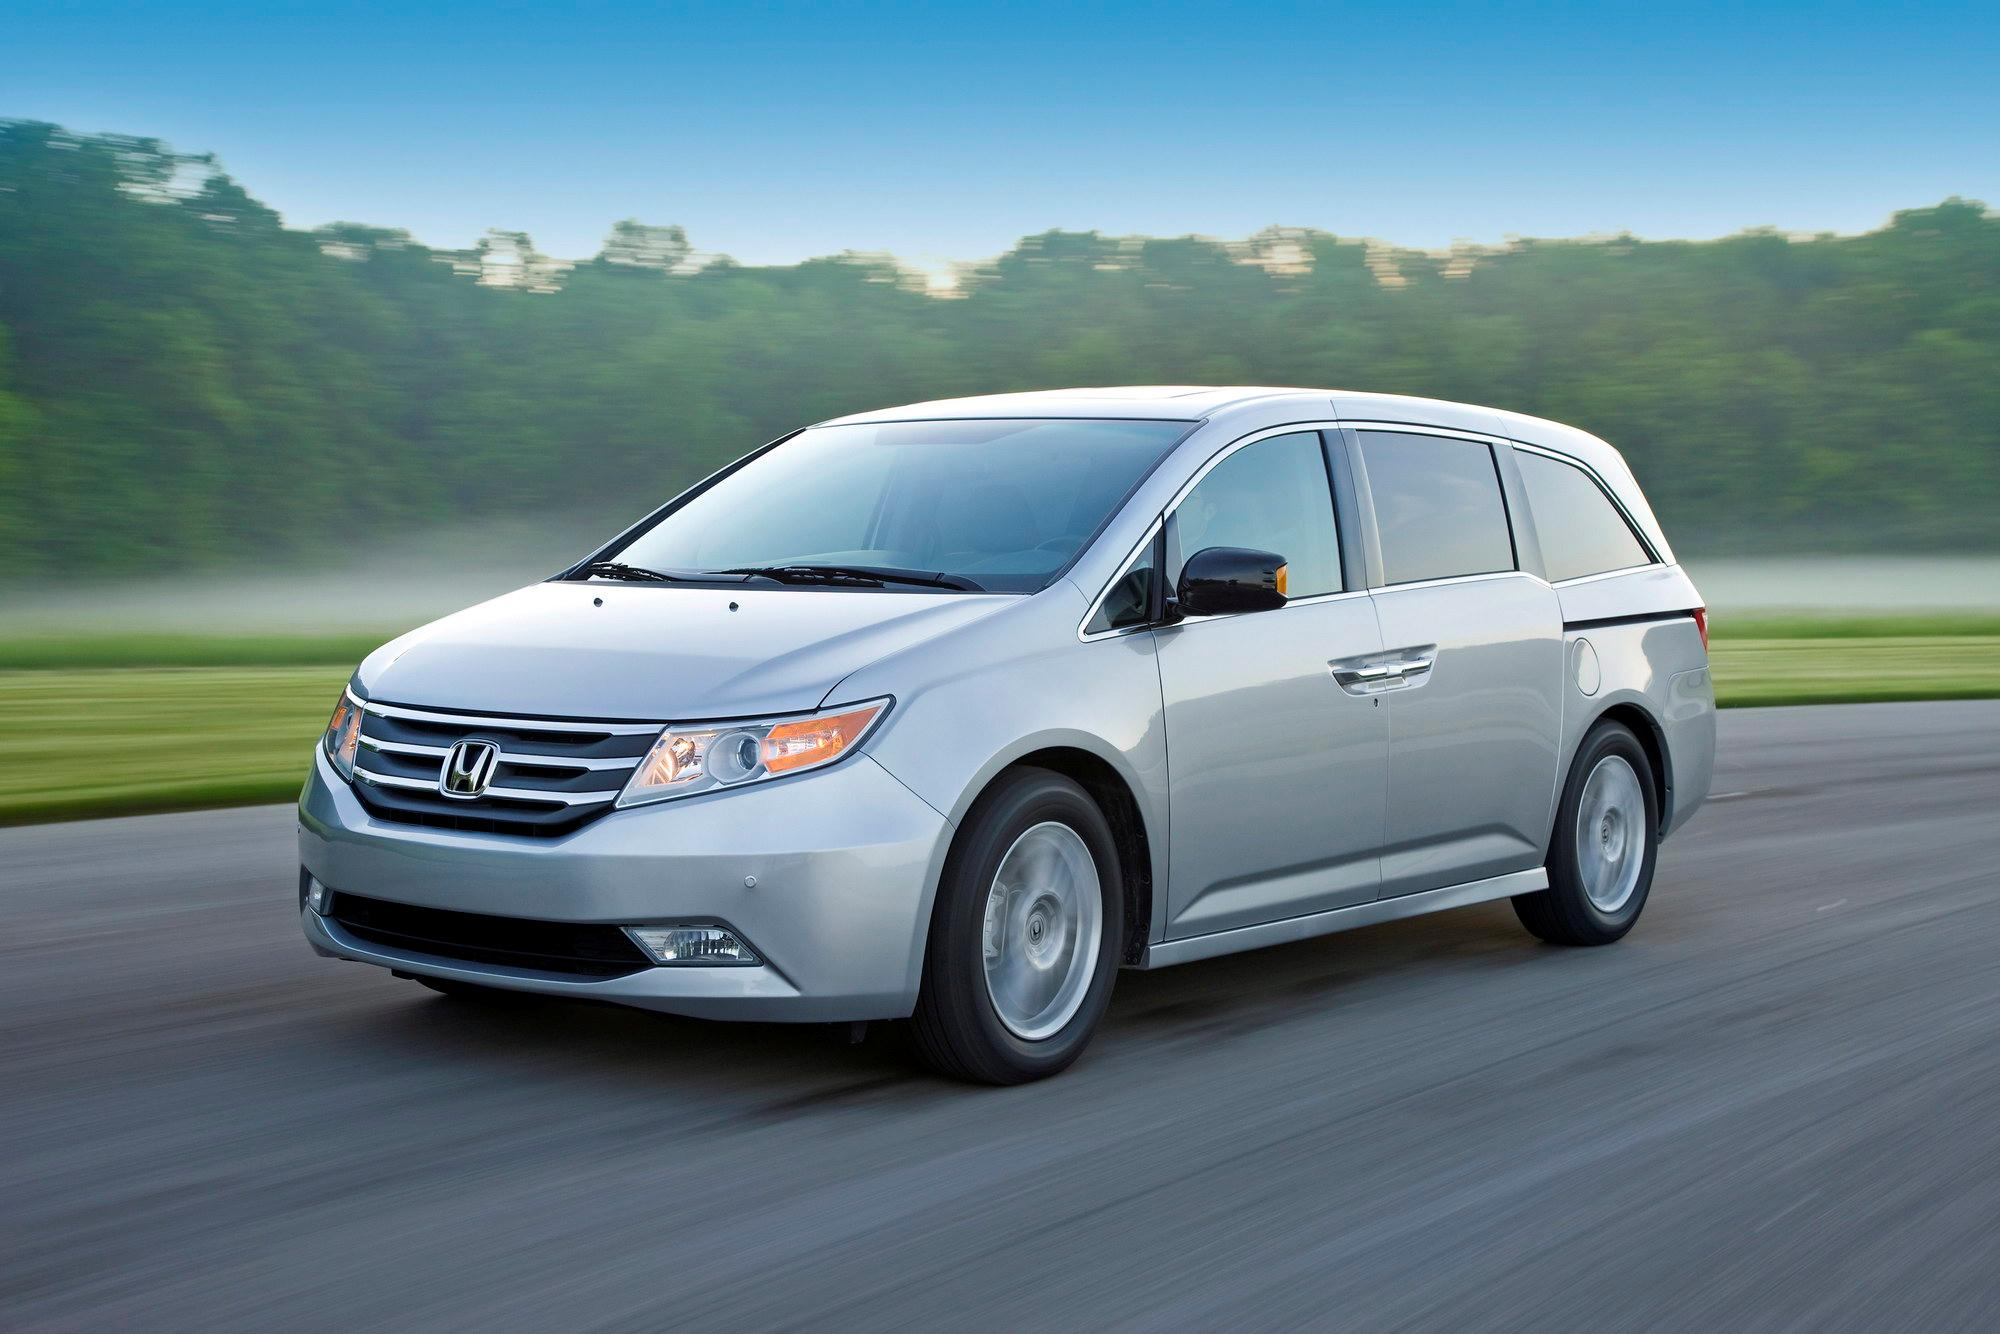 2011 Honda Odyssey Touring Elite Top Speed